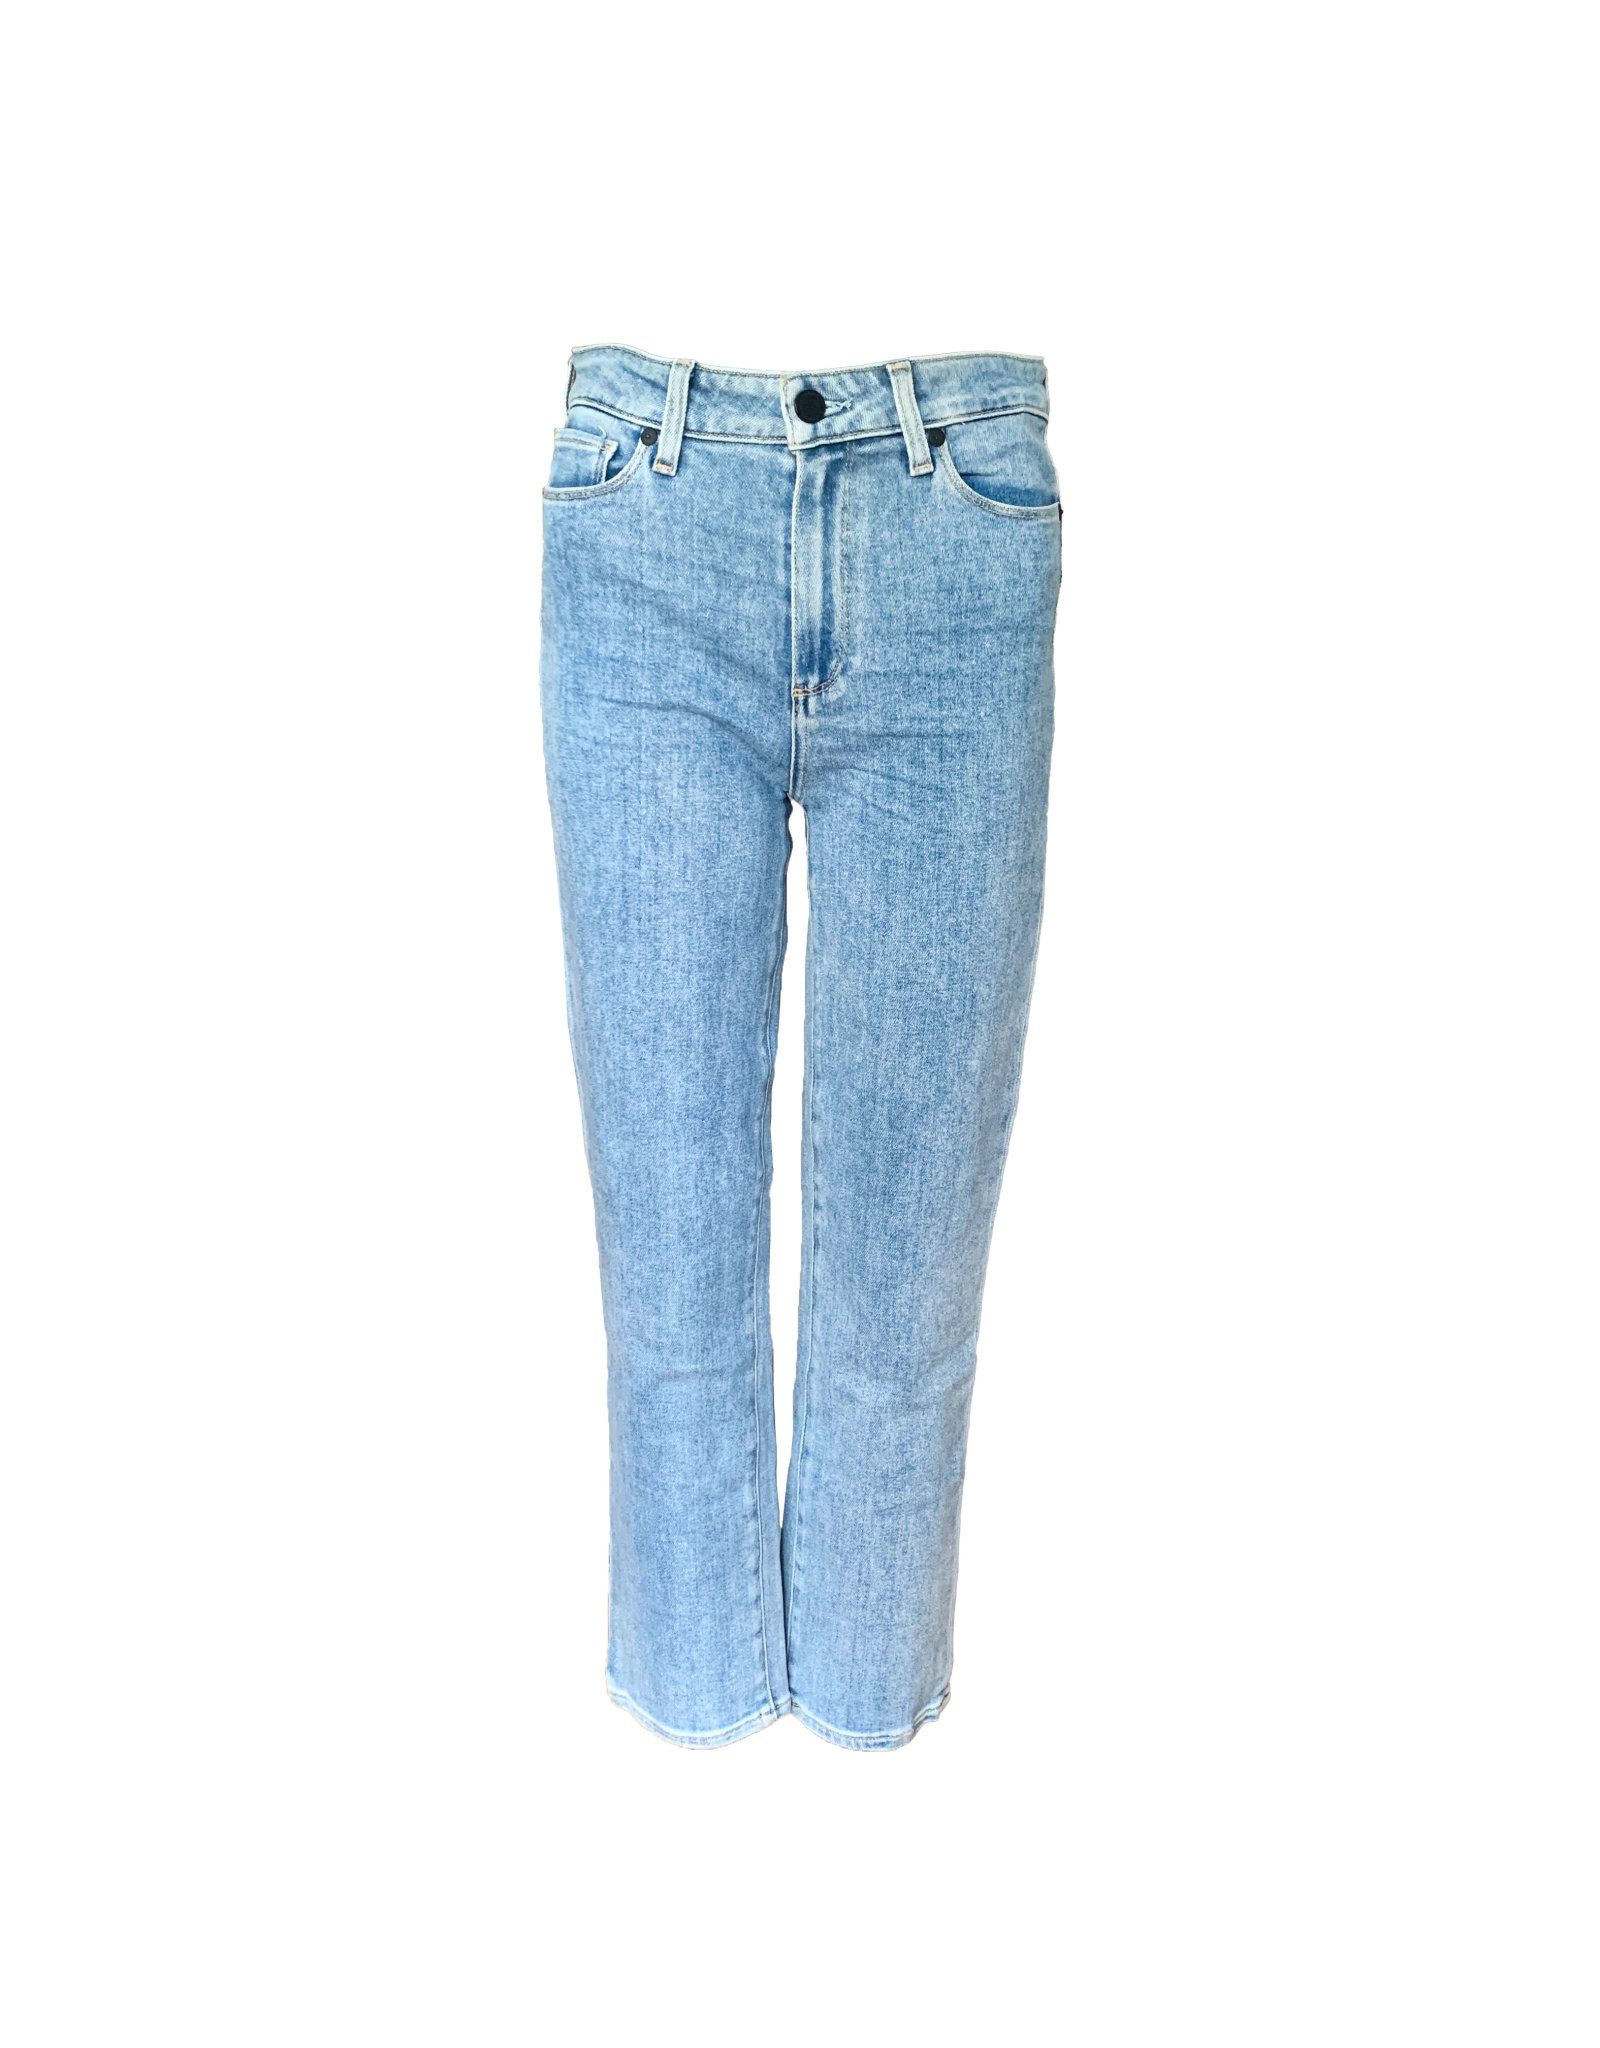 Paige PAIGE Hoxton HighRise Straight  Ankle  Jeans  Size W27